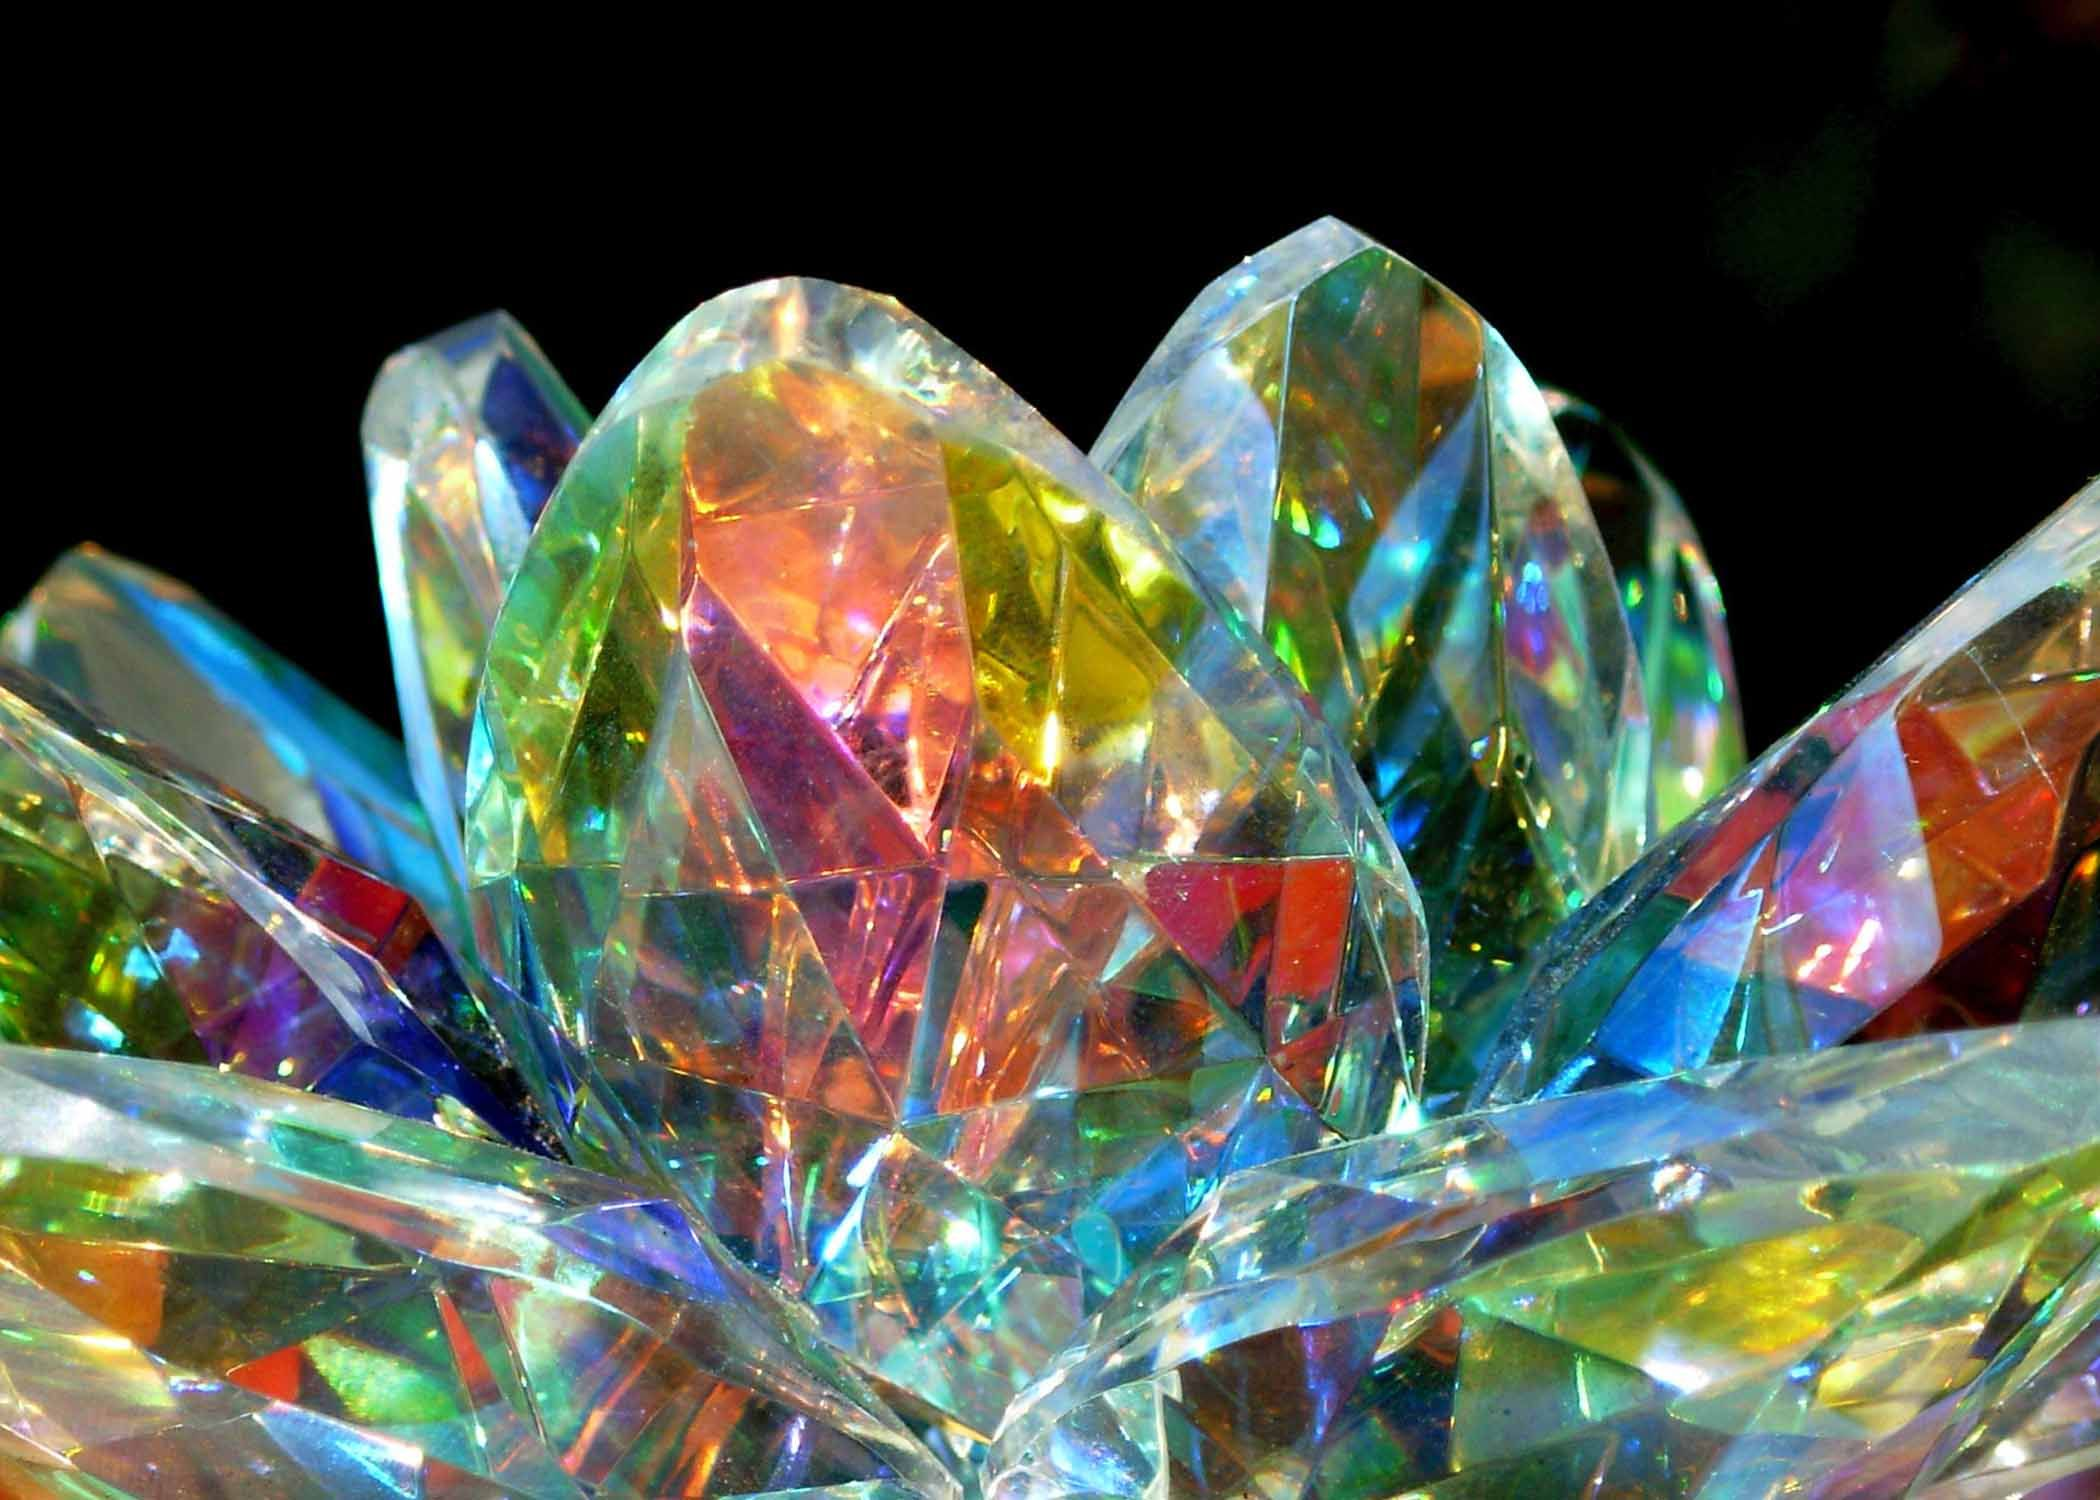 Collection Of Crystals Wallpaper On Spyder Wallpapers 1280x1024 Crystal 52